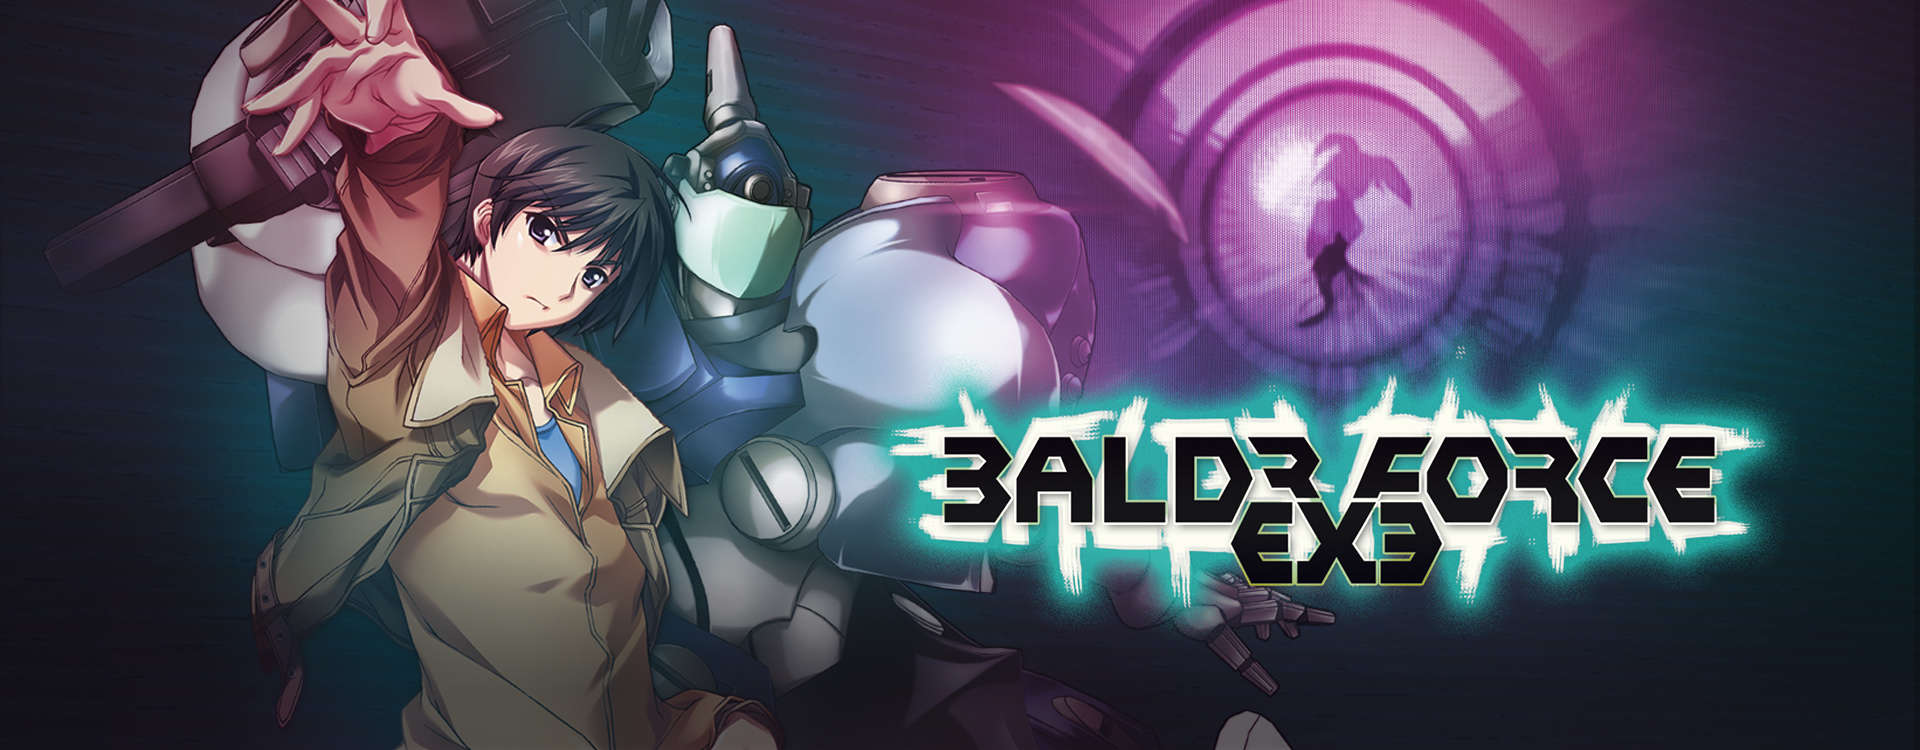 Baldr Force Exe